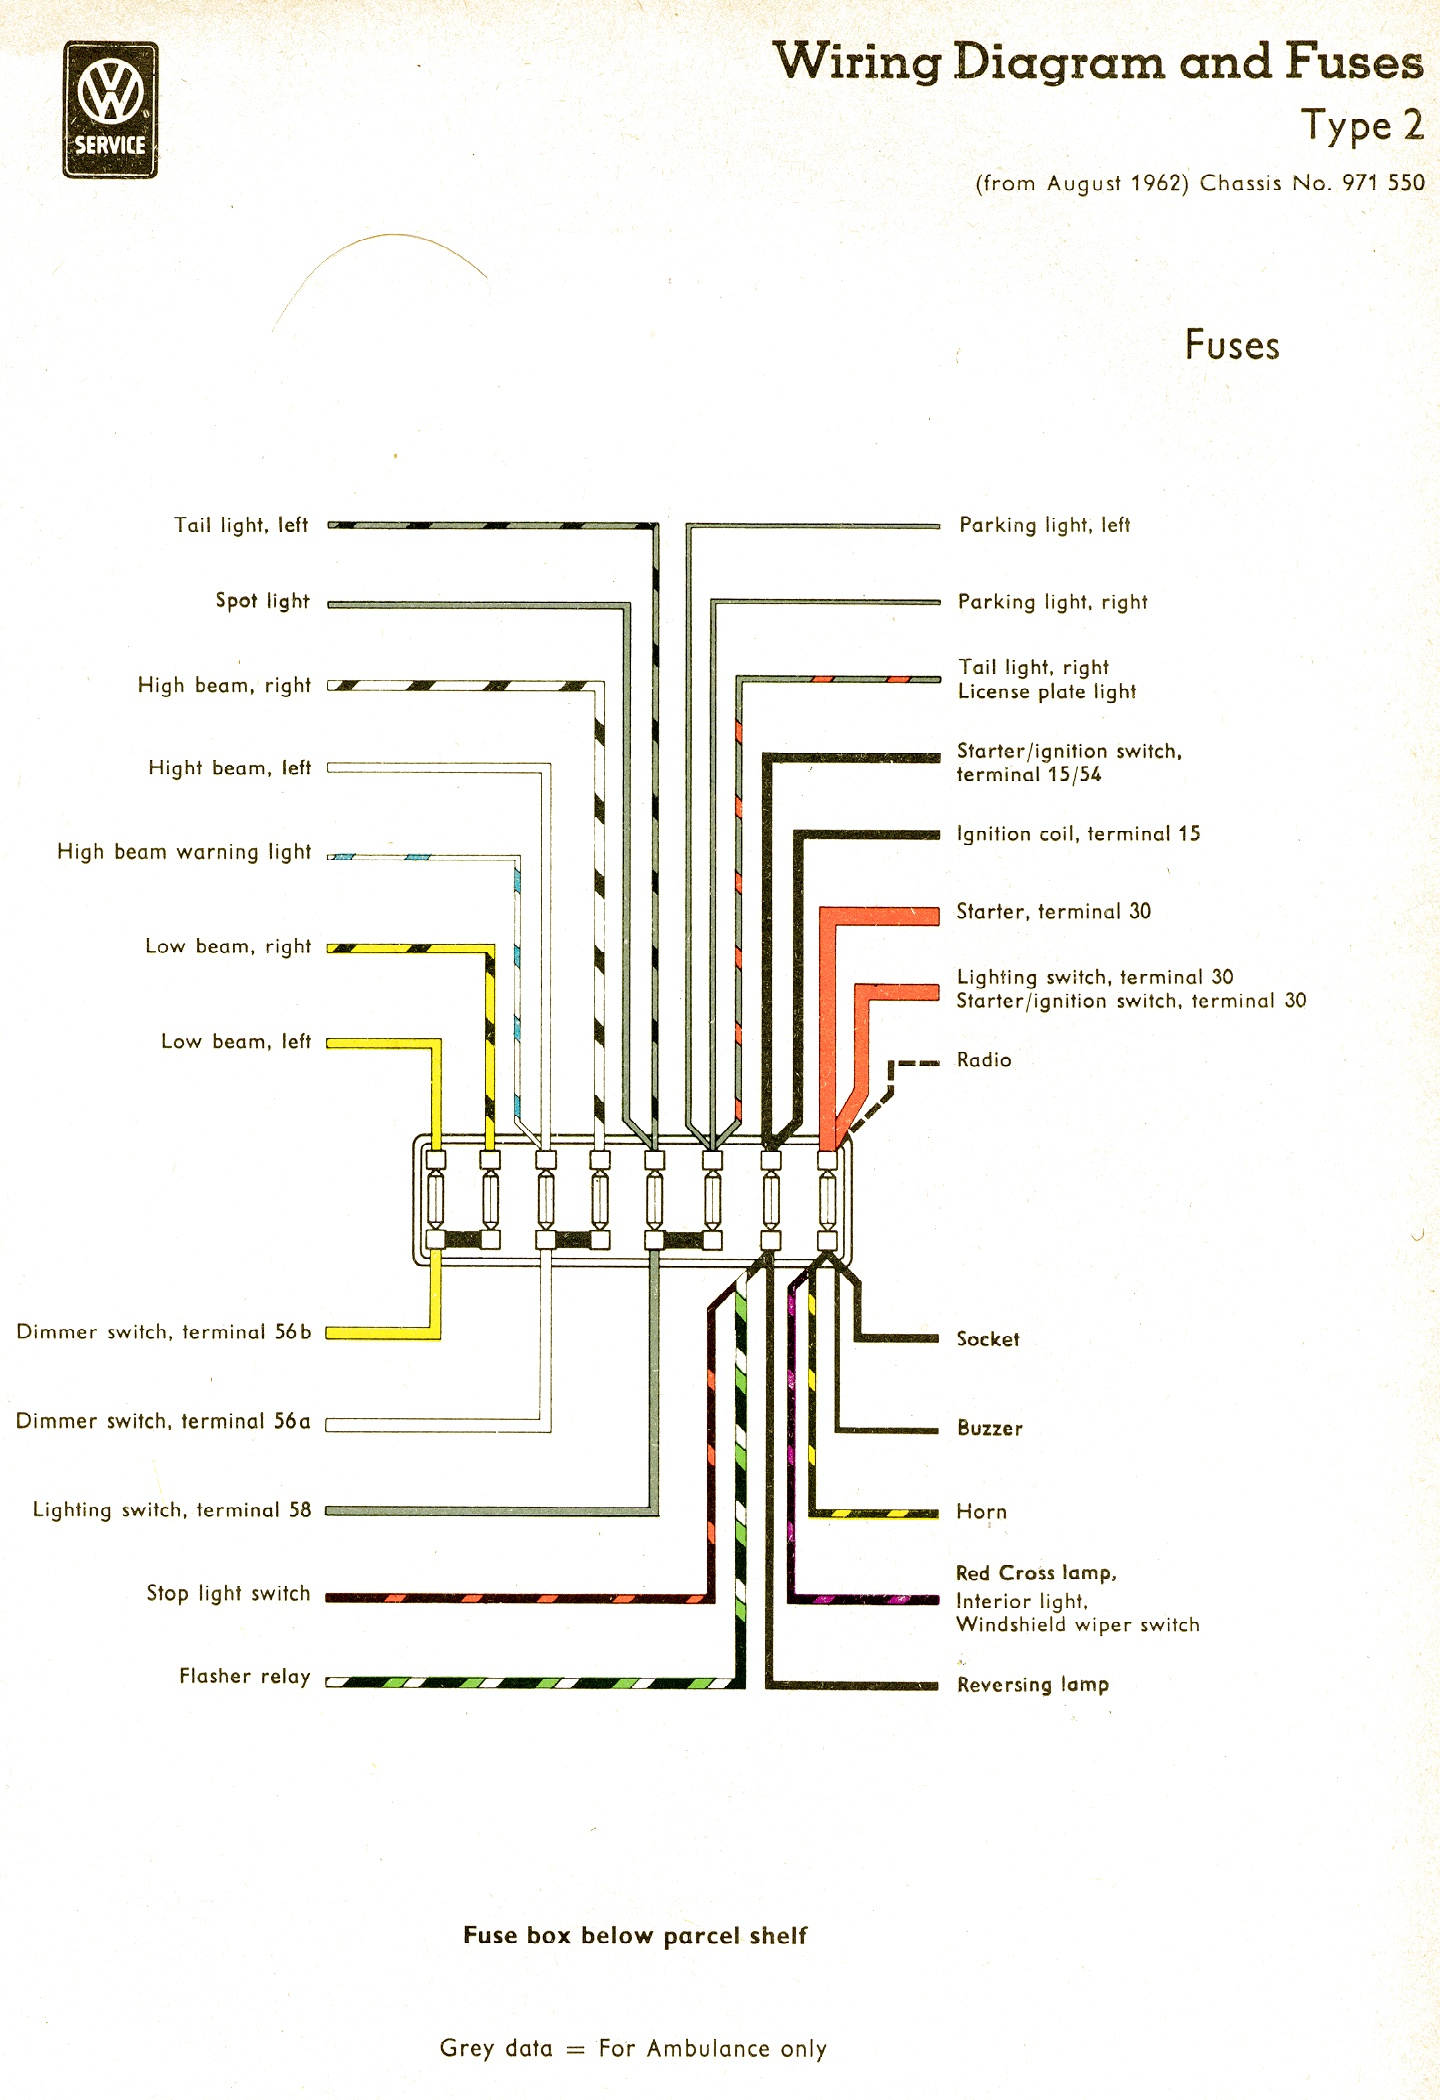 bus 62 fuse vw wiring diagrams 1974 vw bug fuse box diagram at n-0.co